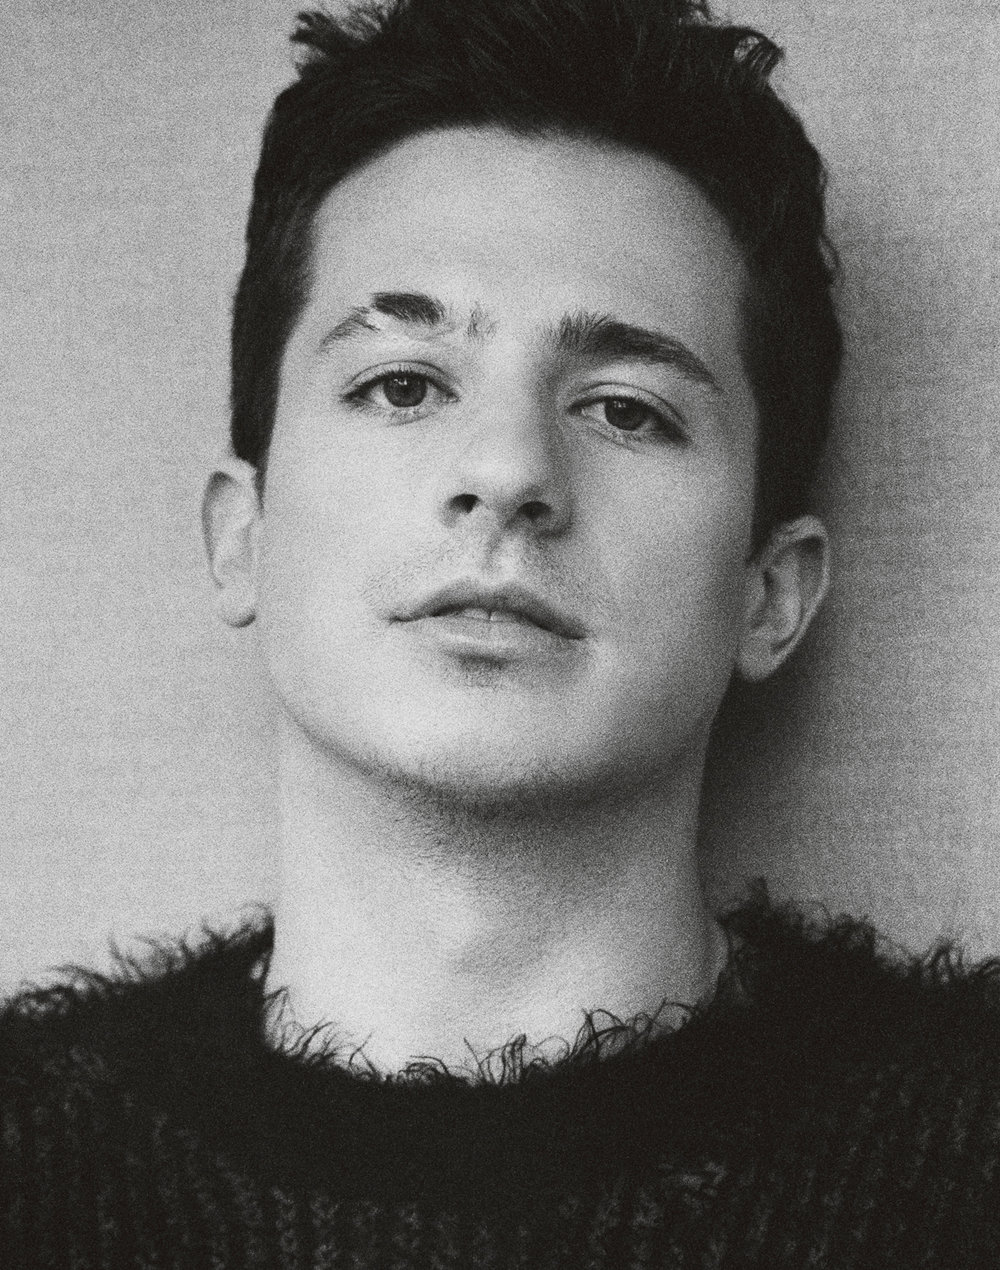 CHARLIE PUTH, MUSICIAN